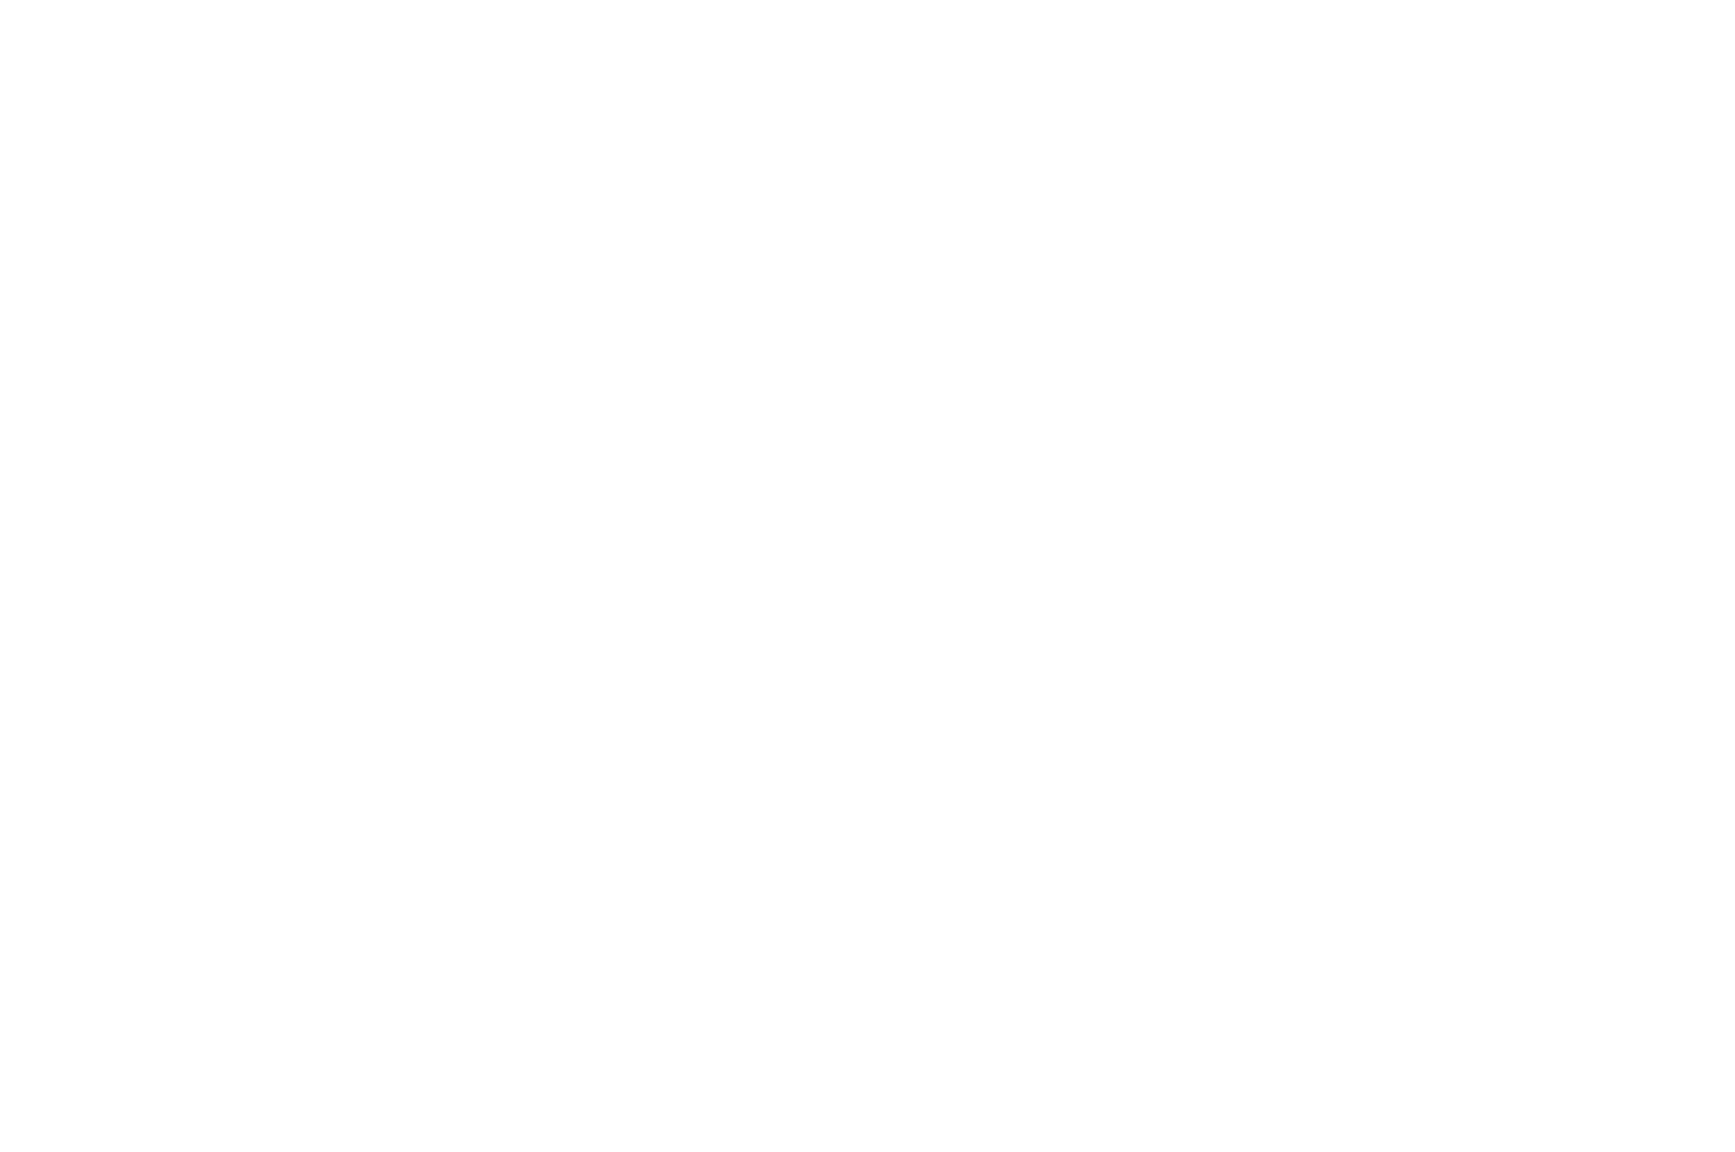 OFFICIAL SELECTION - Rome Independent Prisma Awards - Best Poster - 2020